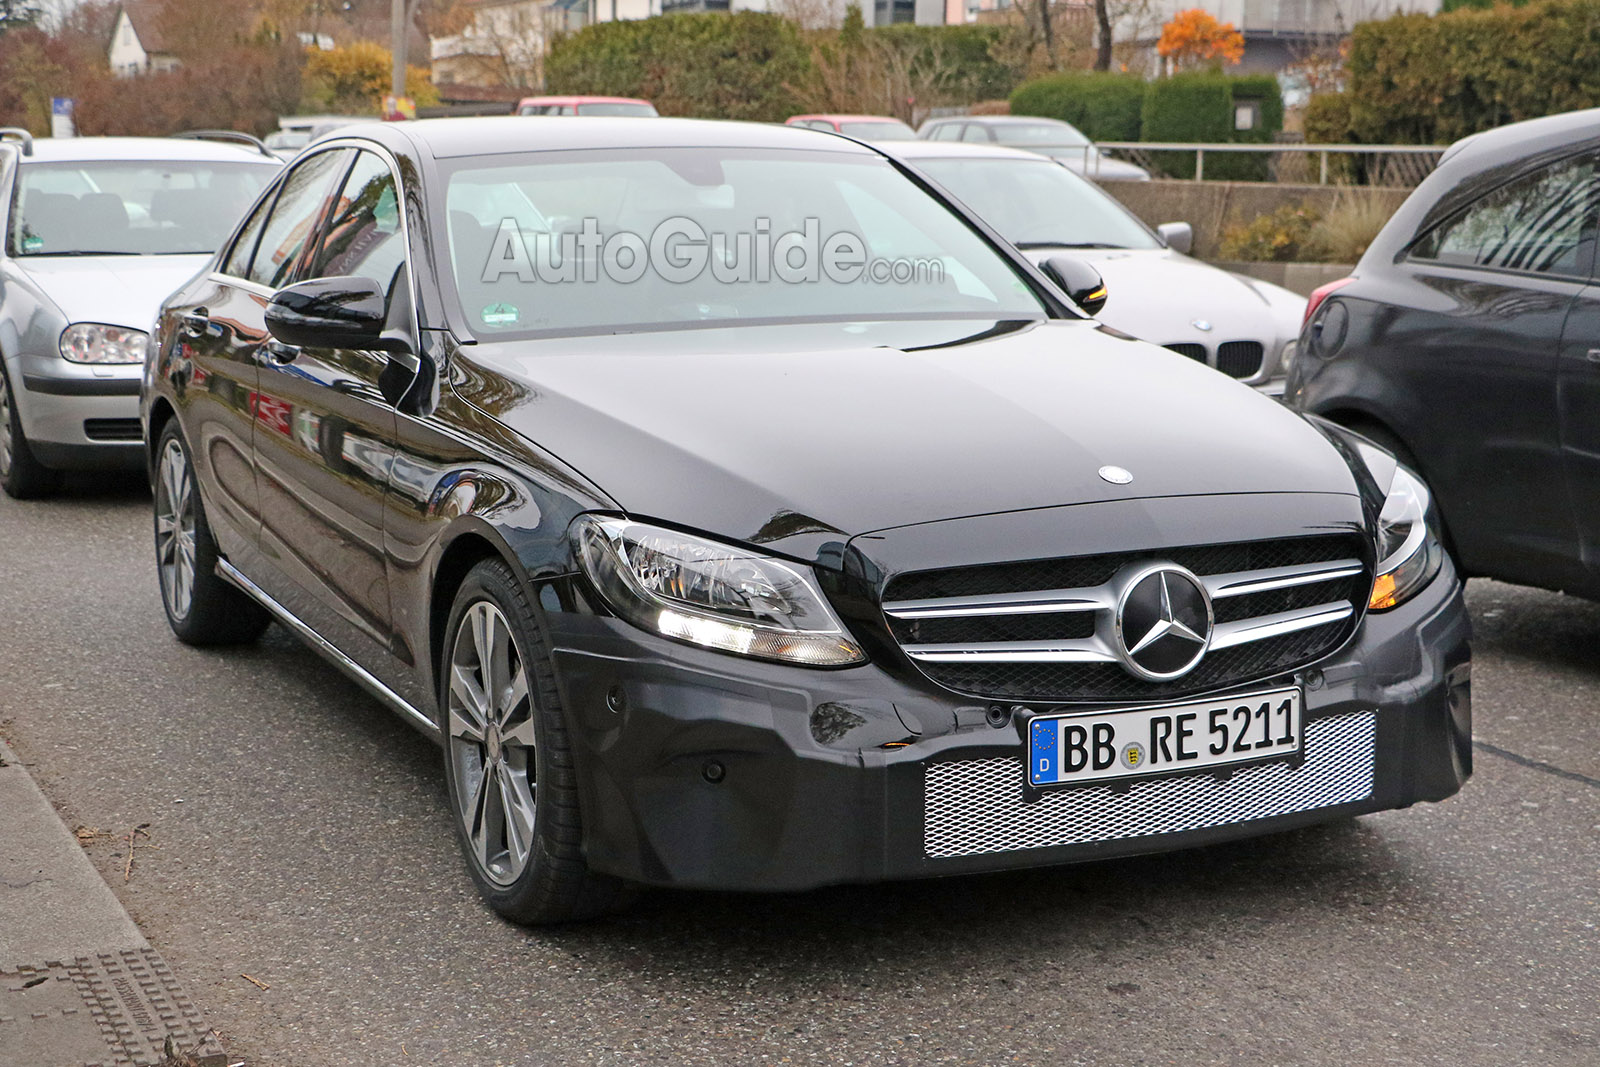 facelifted 2019 mercedes c-class spotted » autoguide news